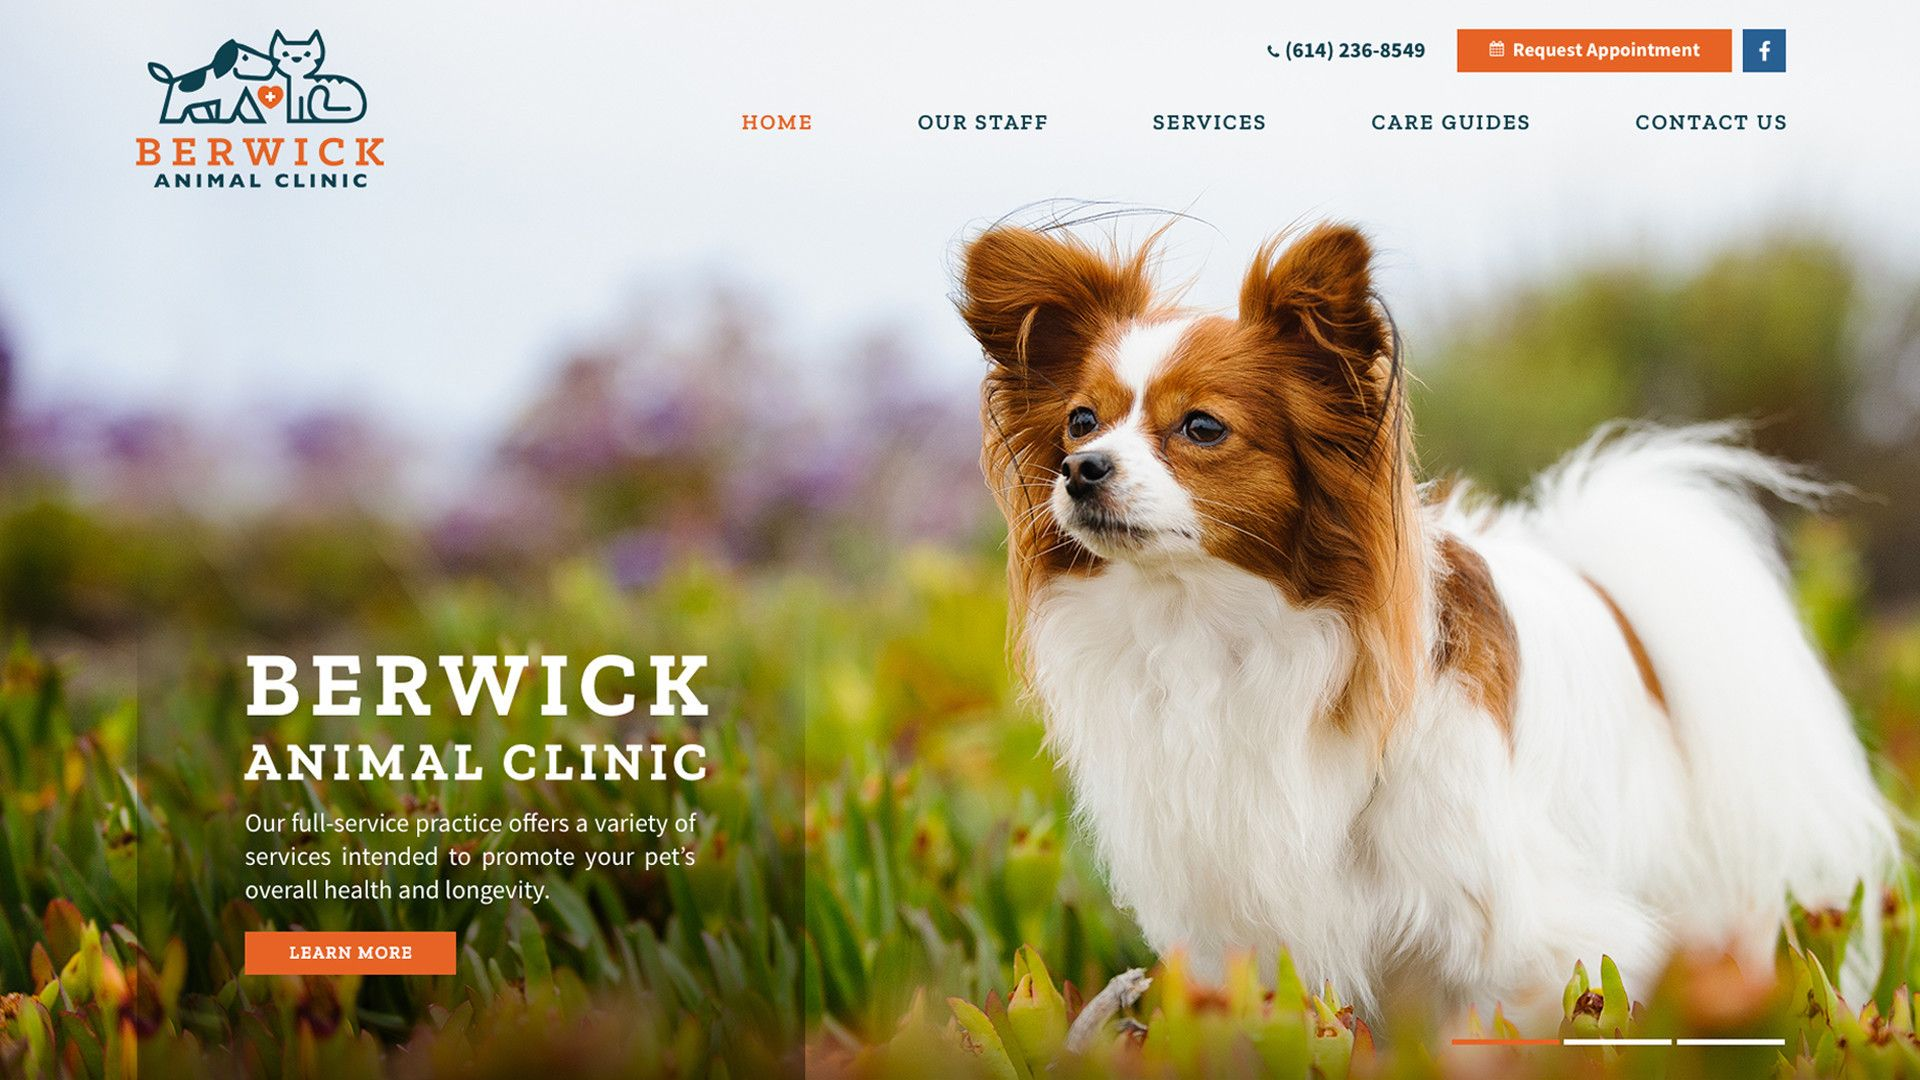 Berwick Animal Clinic